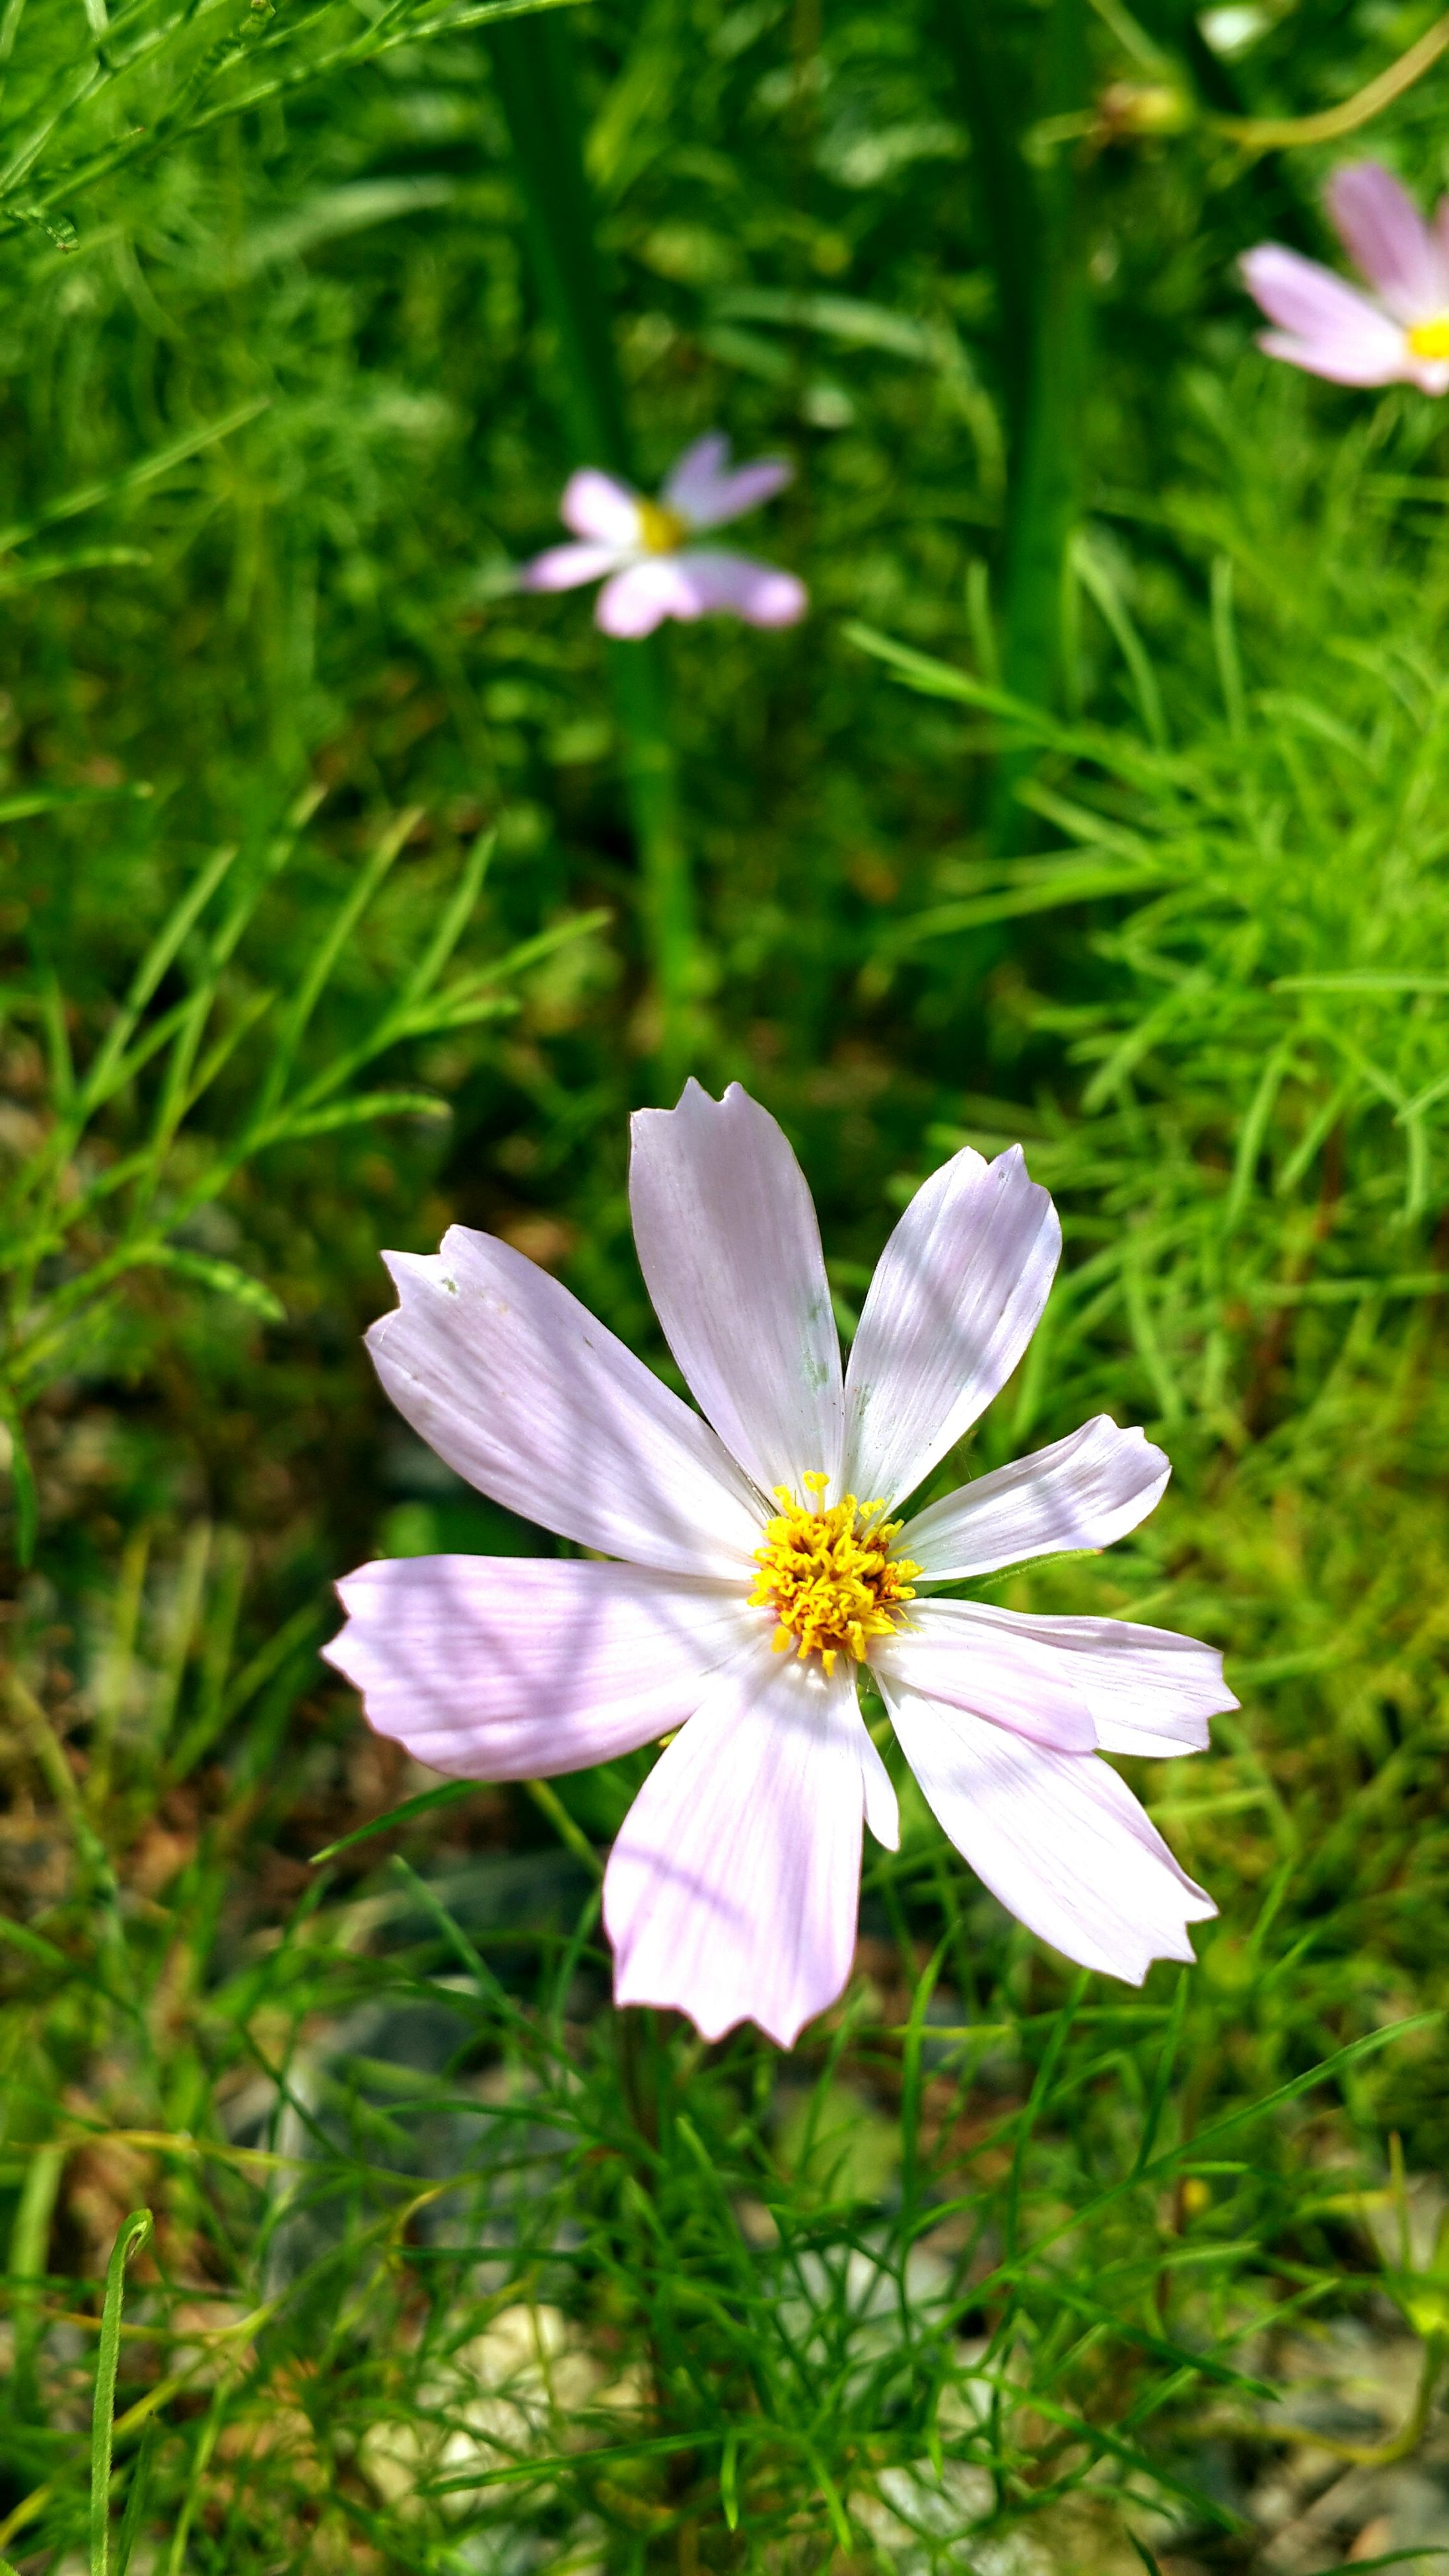 flower, freshness, petal, growth, fragility, flower head, beauty in nature, blooming, nature, focus on foreground, purple, plant, close-up, pollen, in bloom, green color, stamen, day, blossom, no people, outdoors, botany, stem, grass, pink color, selective focus, tranquility